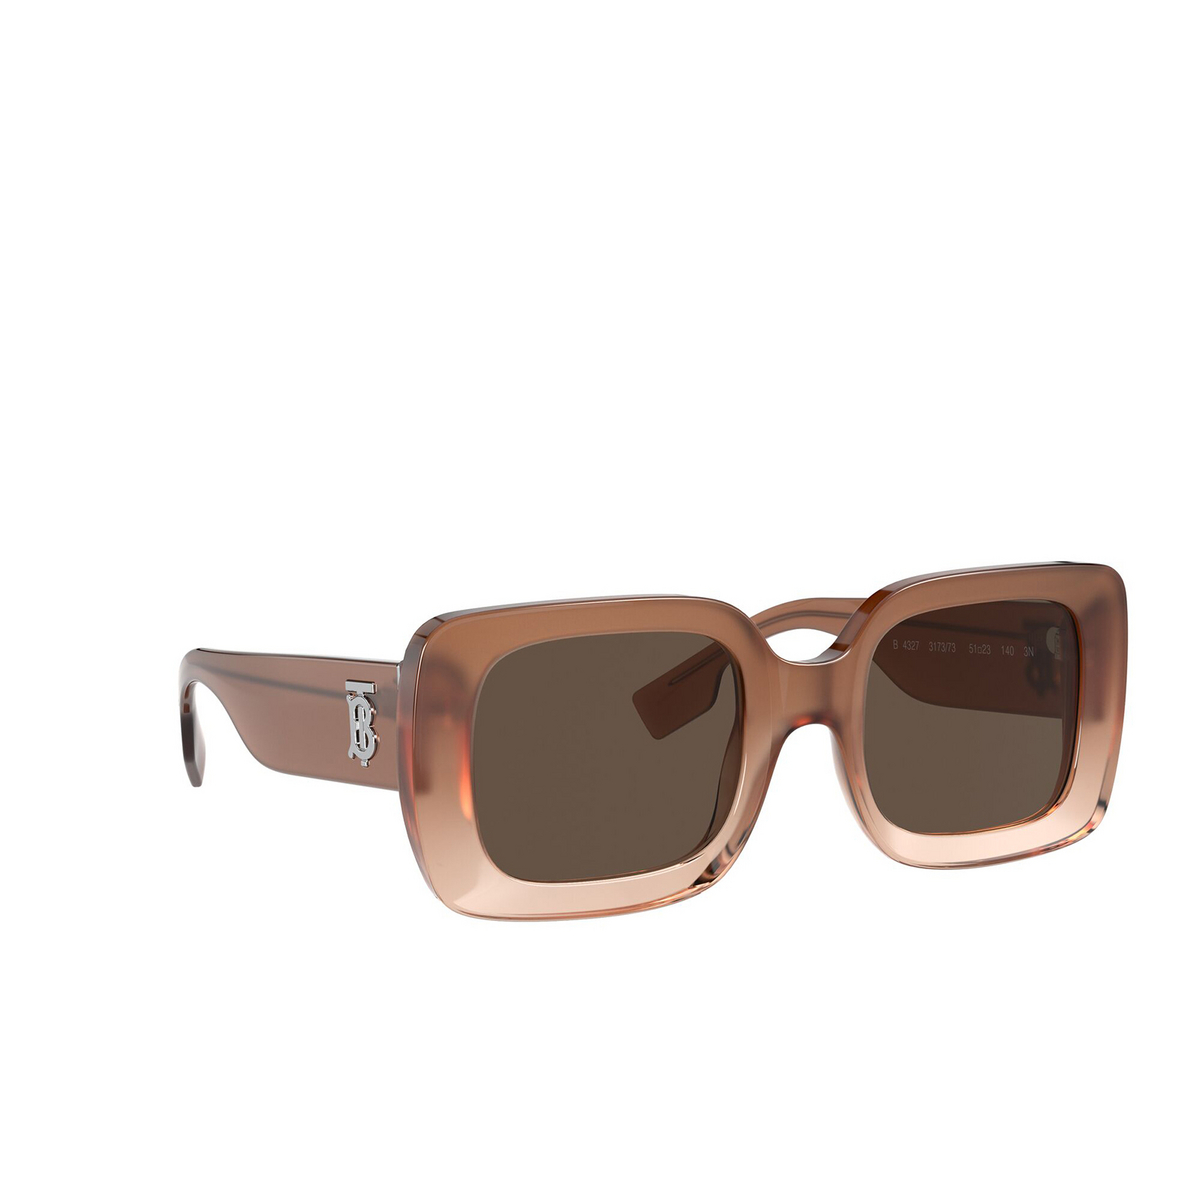 Burberry® Square Sunglasses: Delilah BE4327 color Brown 317373 - three-quarters view.